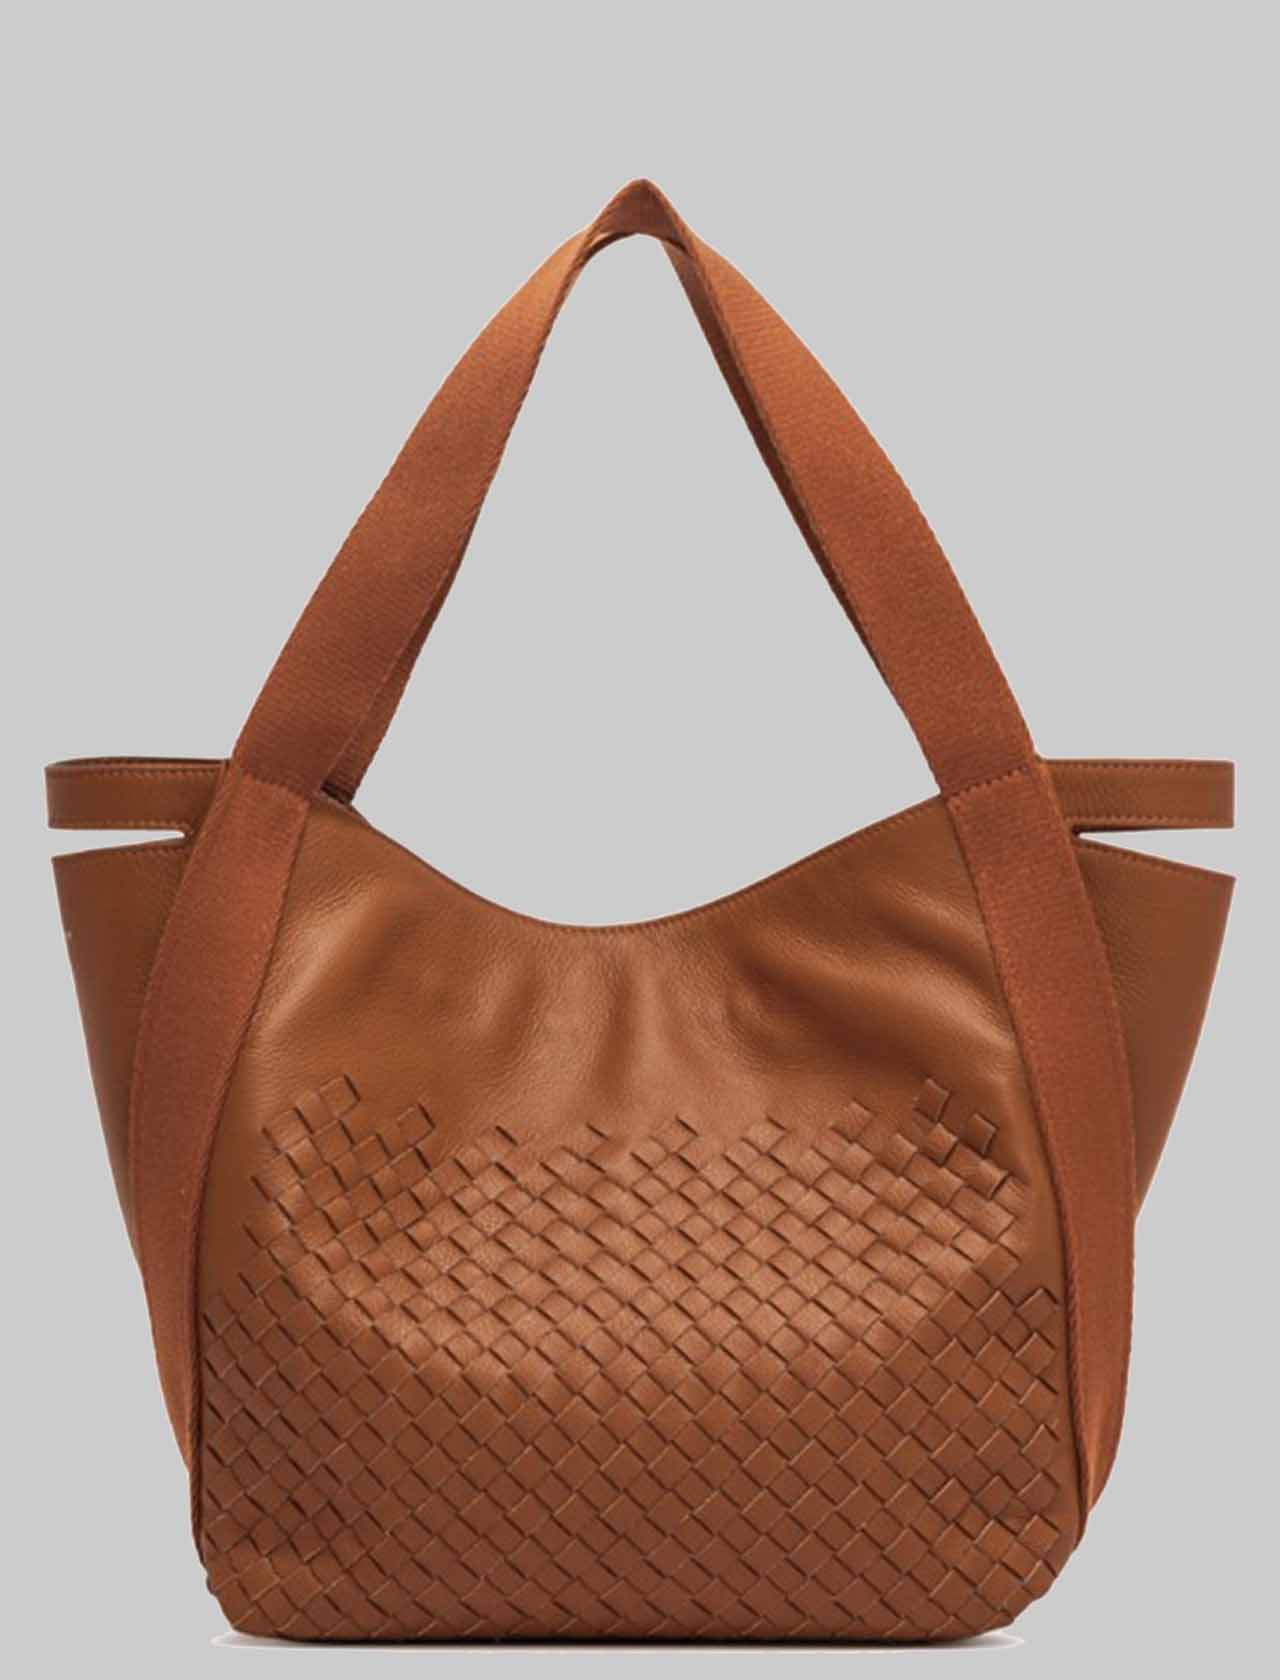 Woman Asia Shoulder Bag In Braided Leather with Handles in Tint Gianni Chiarini | Bags and backpacks | BS8410206